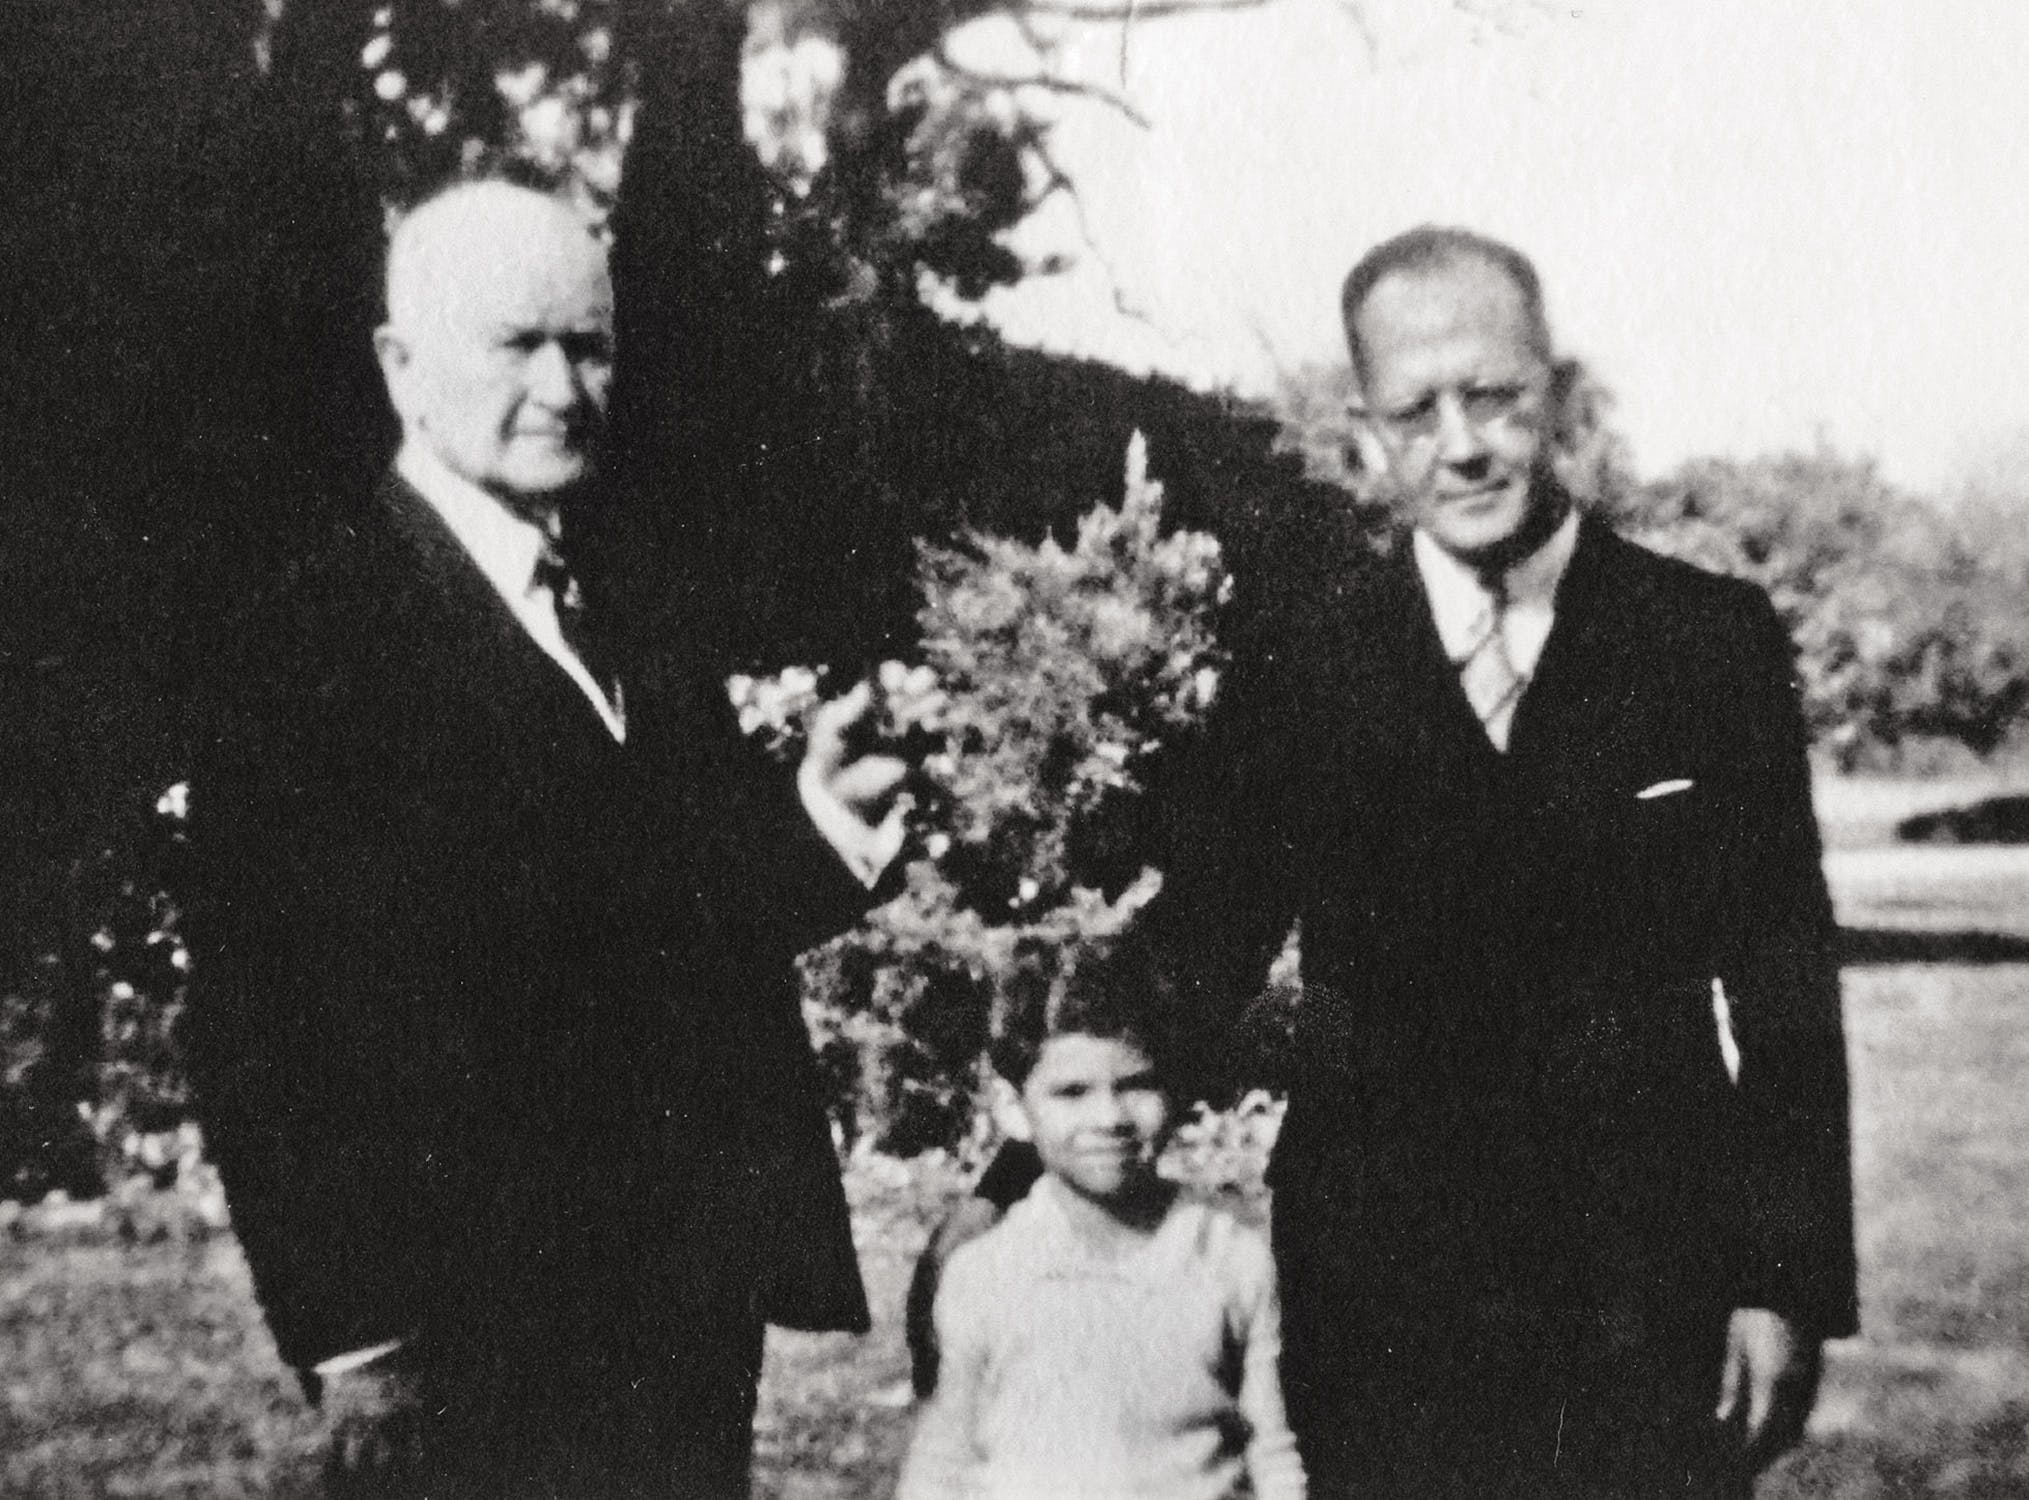 James Baker with his father and grandfather